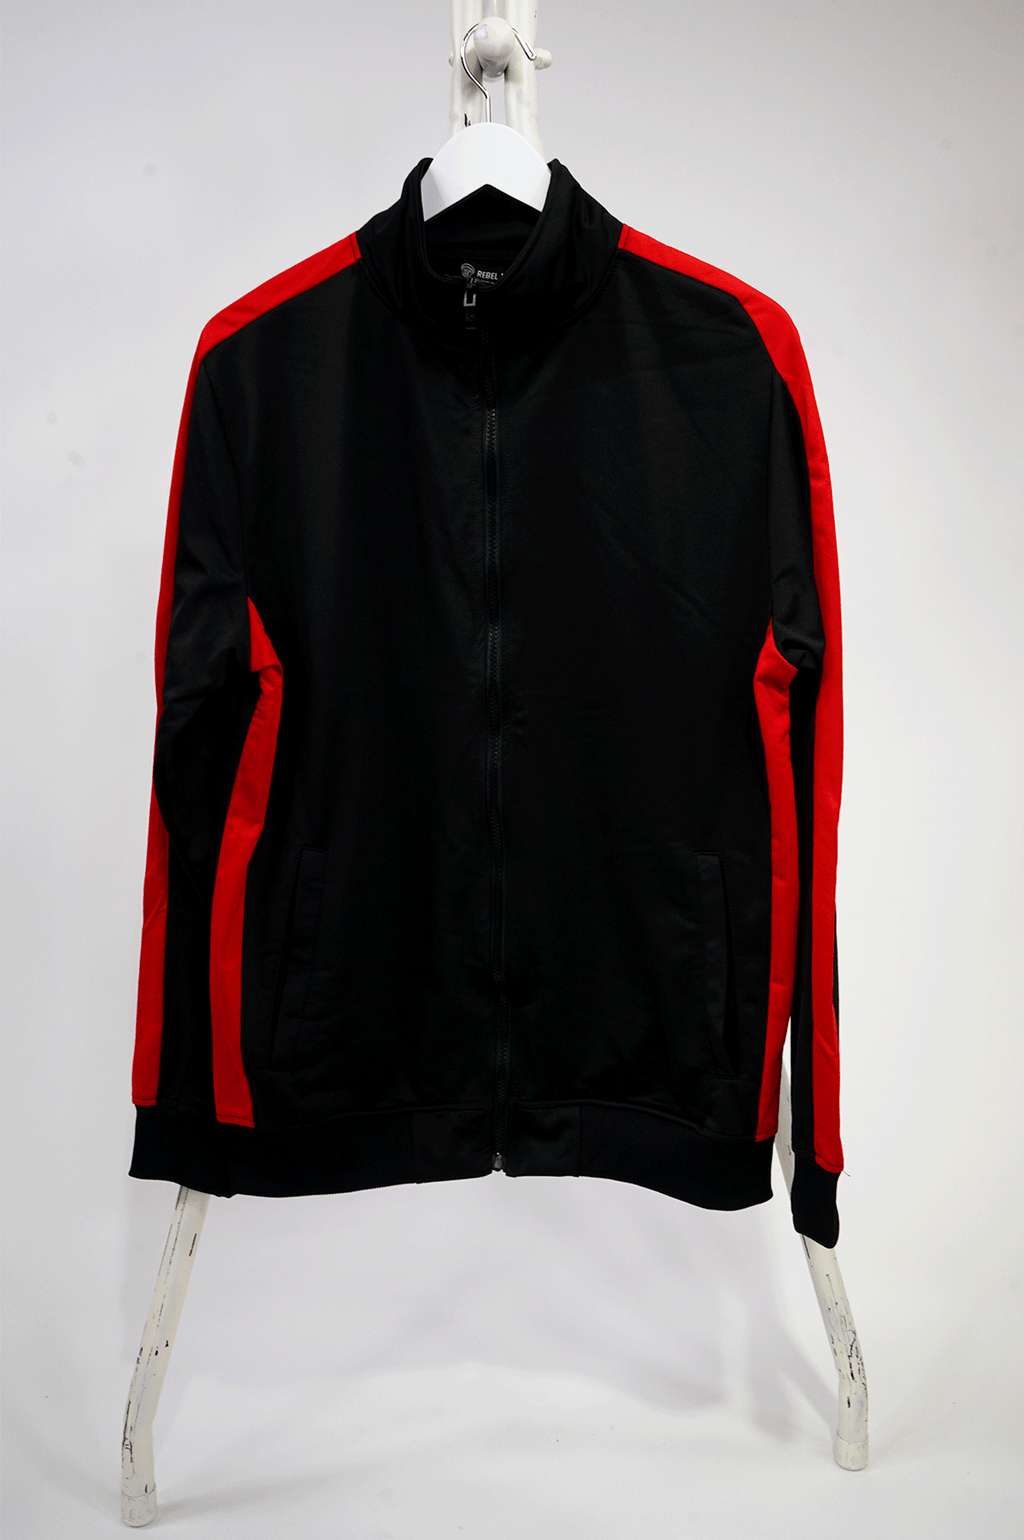 AAO FASHION MENS TRICOT COLOR BLOCK JACKETS